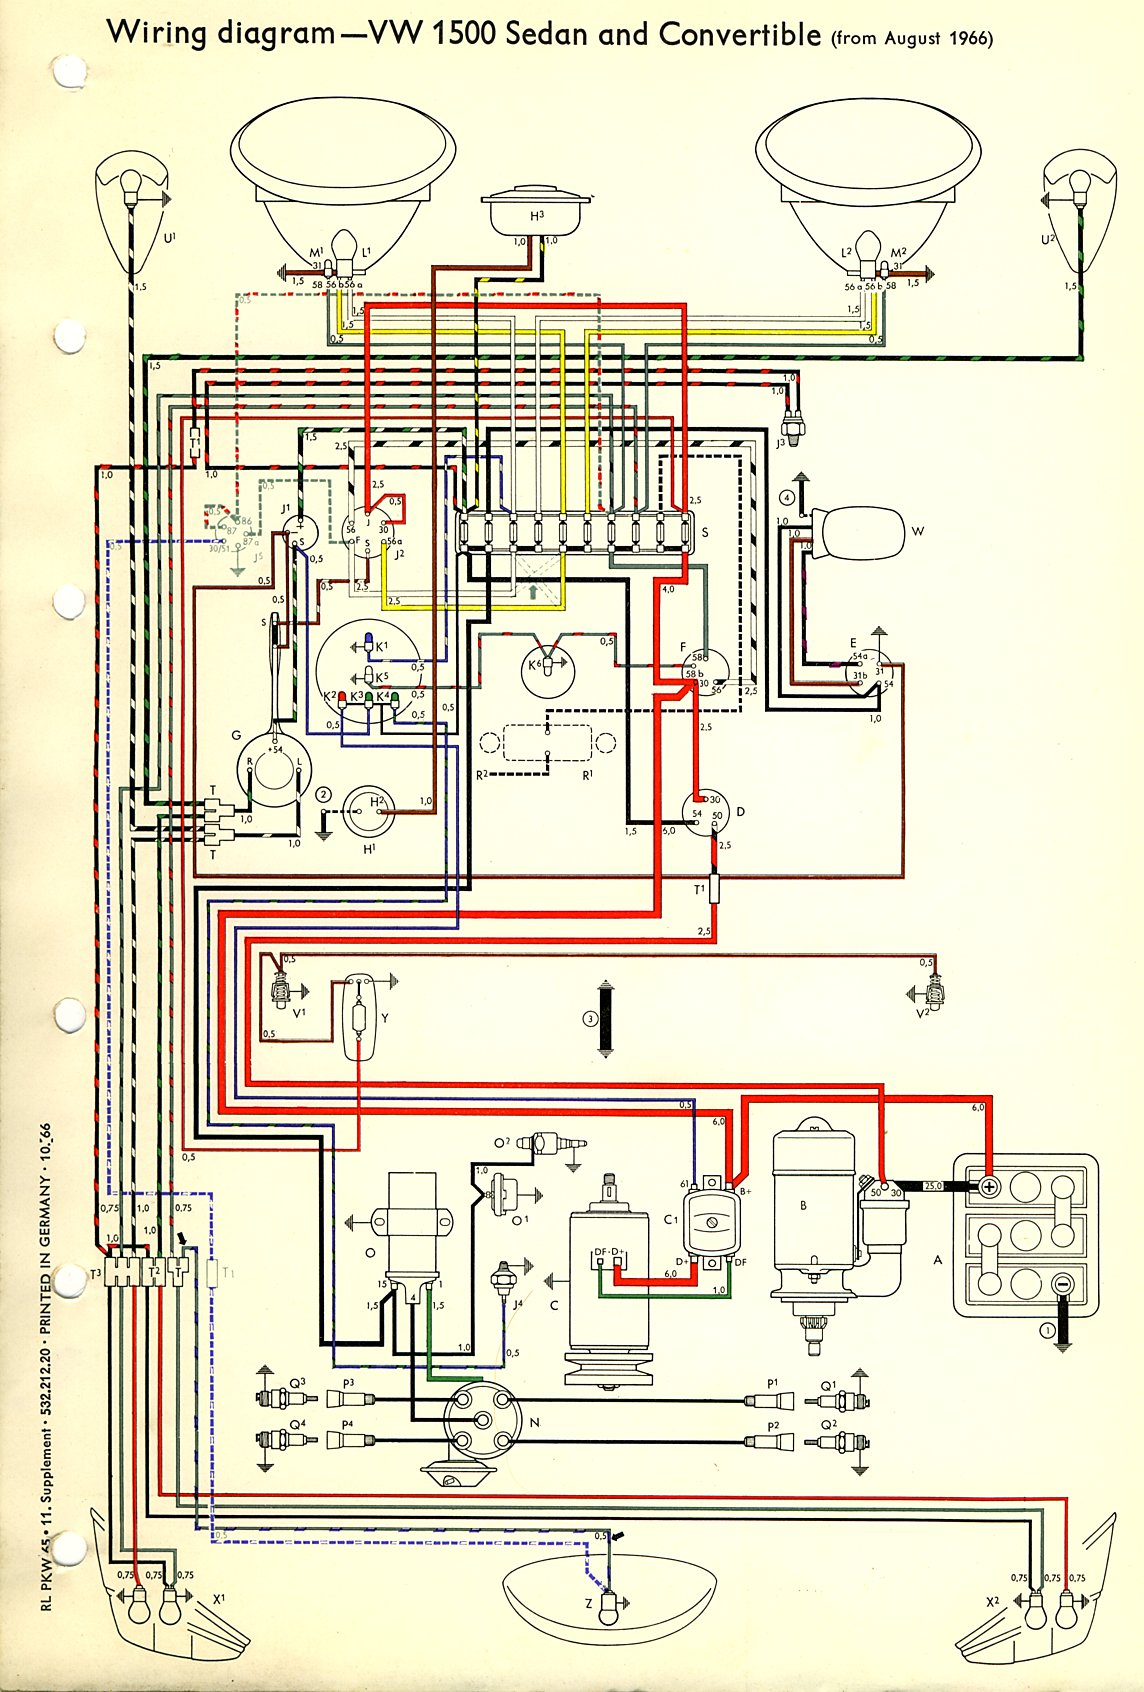 1973 vw bus wiring harness wiring diagram online 1969 VW Bus Fuse Box 1973 vw wiring harness data wiring diagram today baja bug wiring harness 1973 vw bus wiring harness